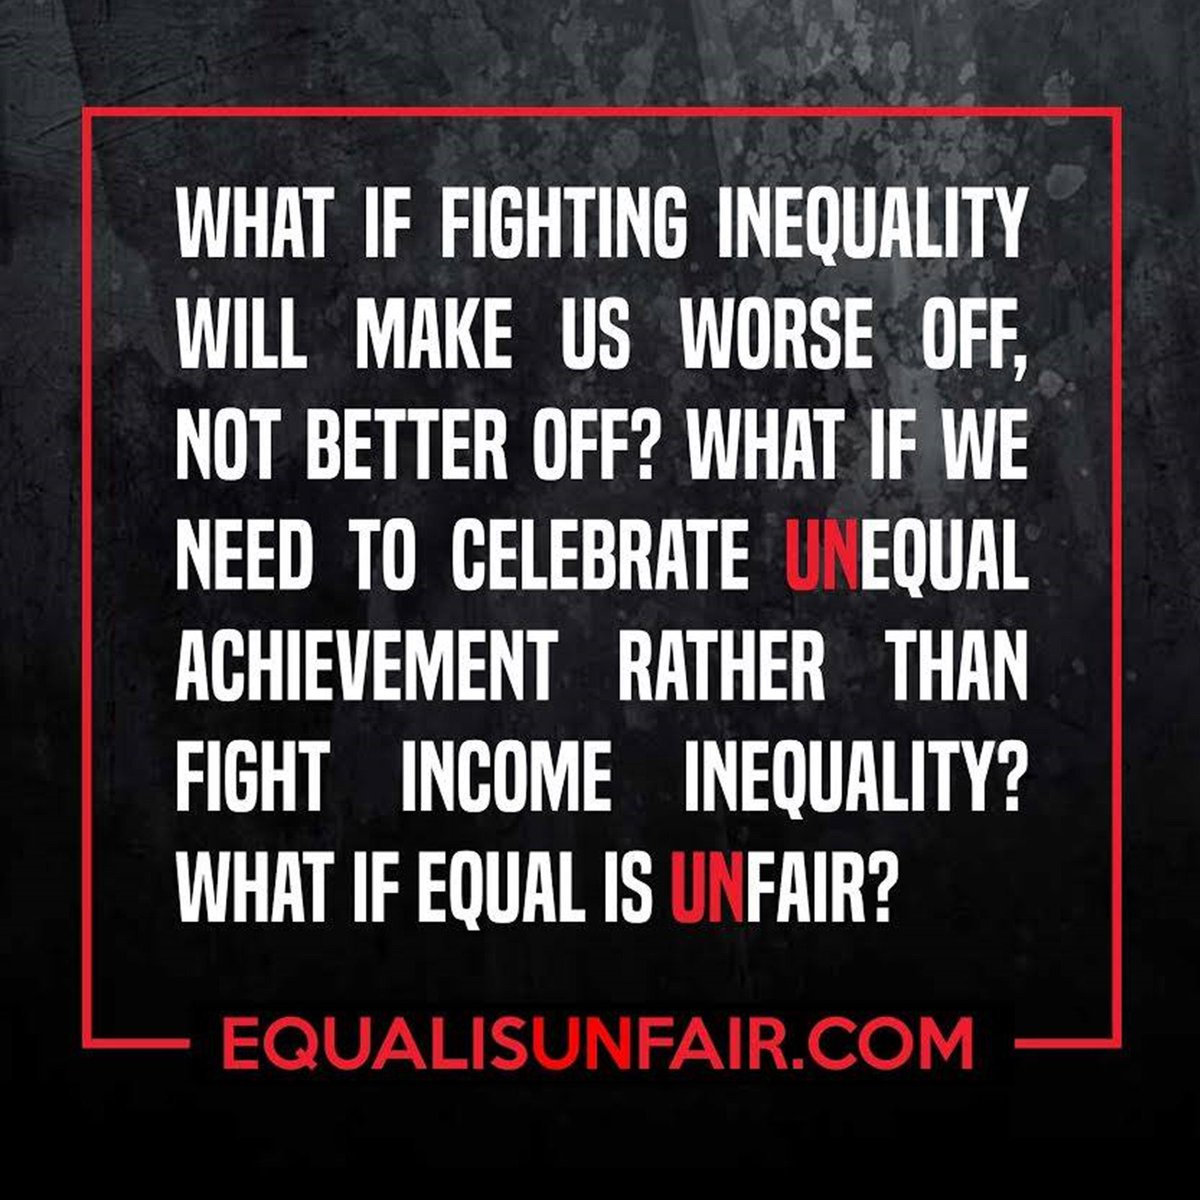 https://t.co/wRxYRF6ZBI RT this for a chance to receive a signed copy of #EqualisUnfair and a t-shirt! https://t.co/jfmwHcriTf